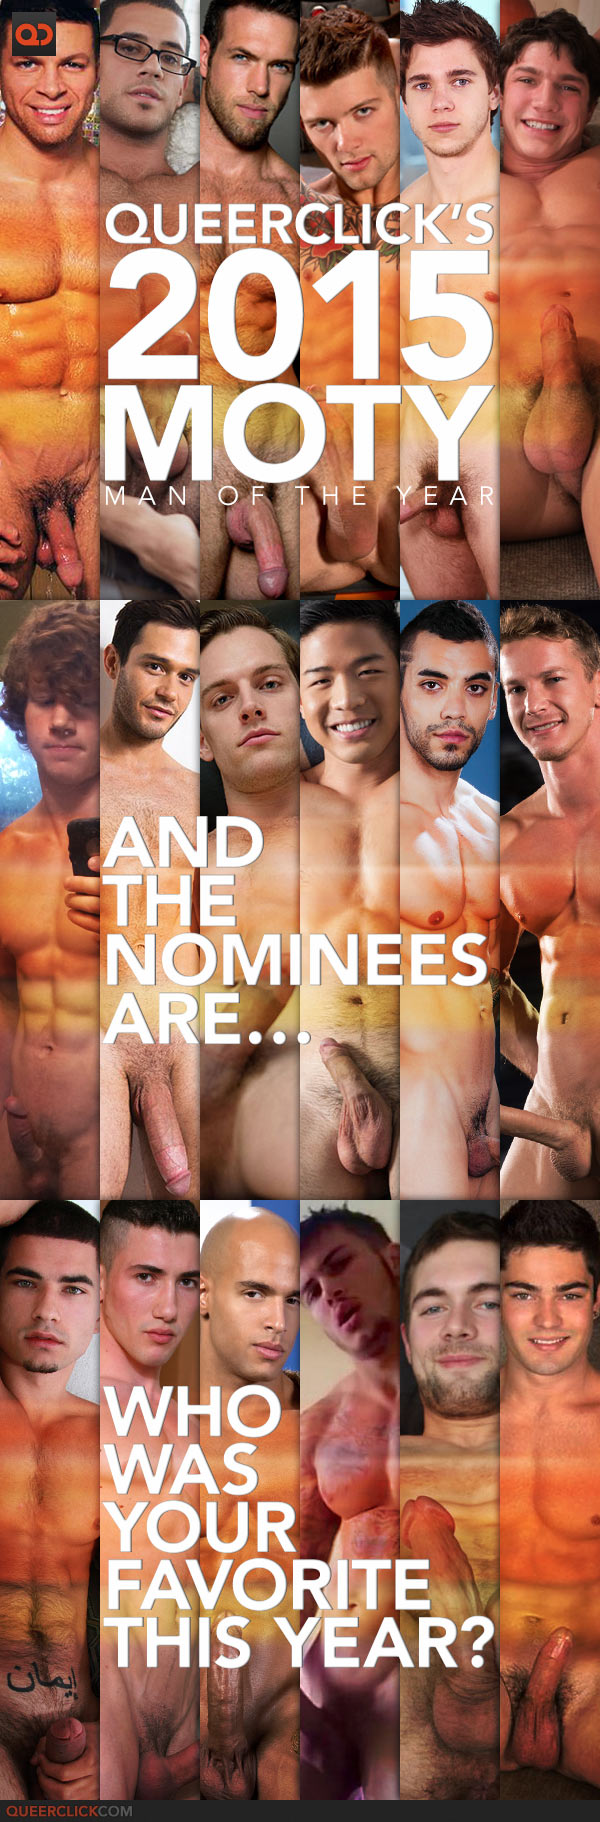 QueerClick's 2015 Man of the Year! And The Nominees Are…